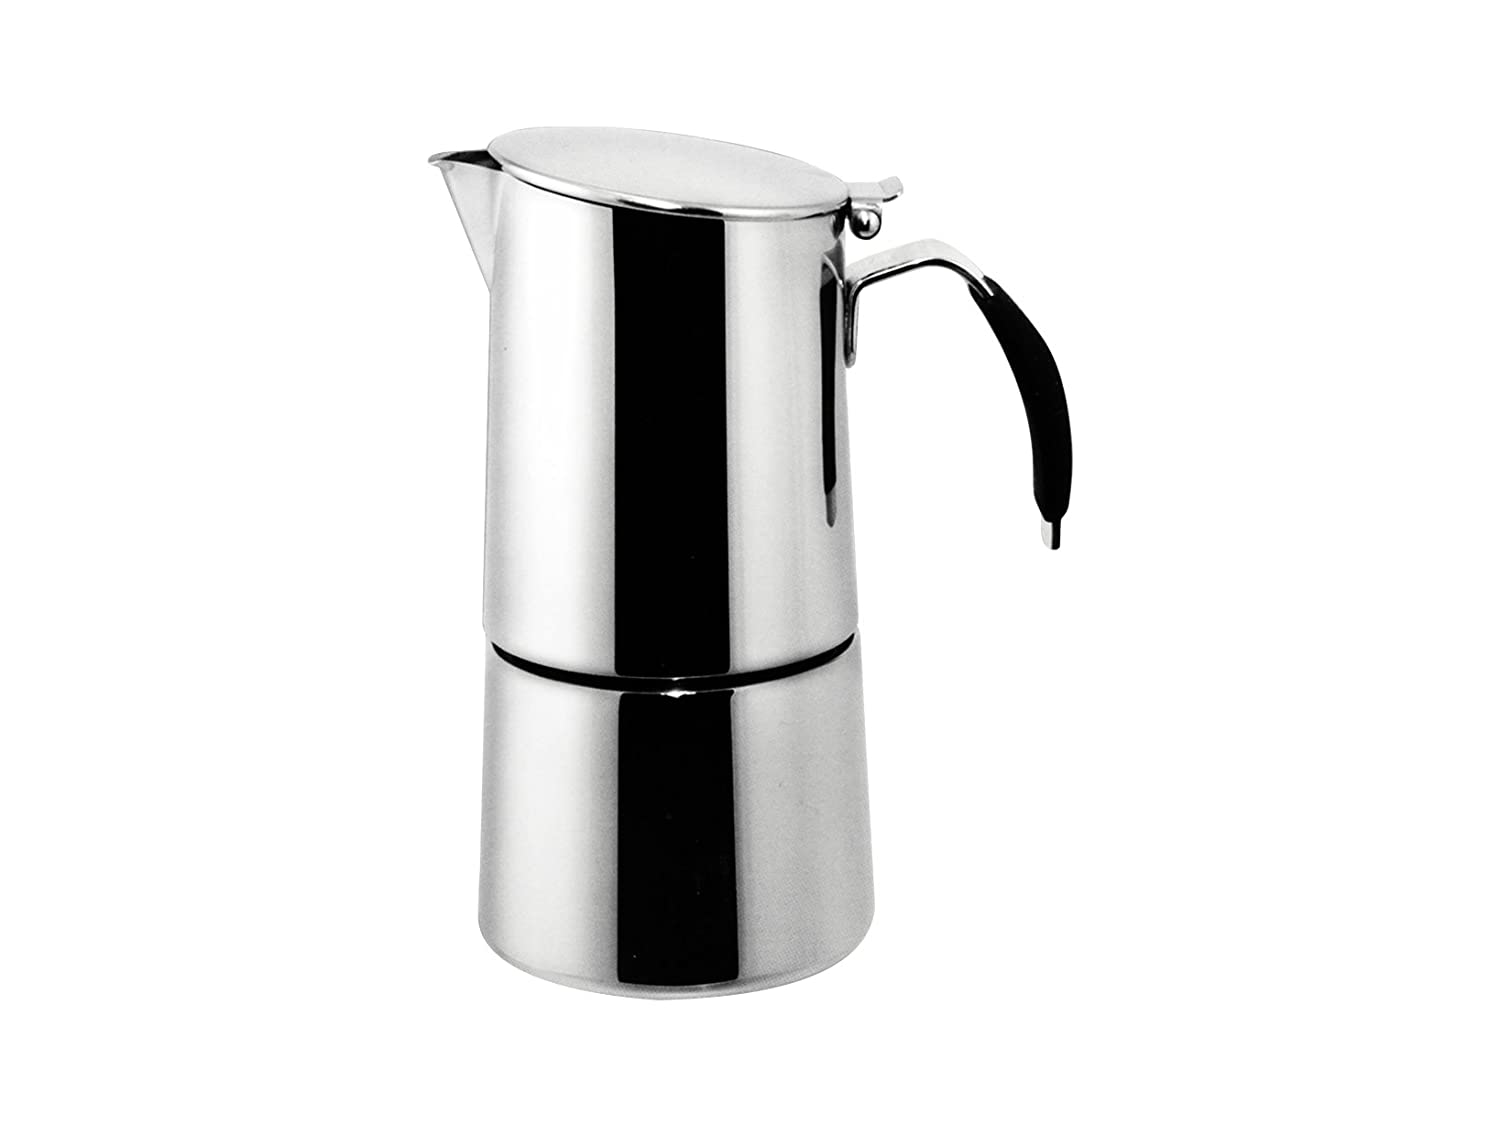 Ilsa Omnia Expresso Coffee Maker with Induction Bottom for 4 Cups Stainless Steel Silver color